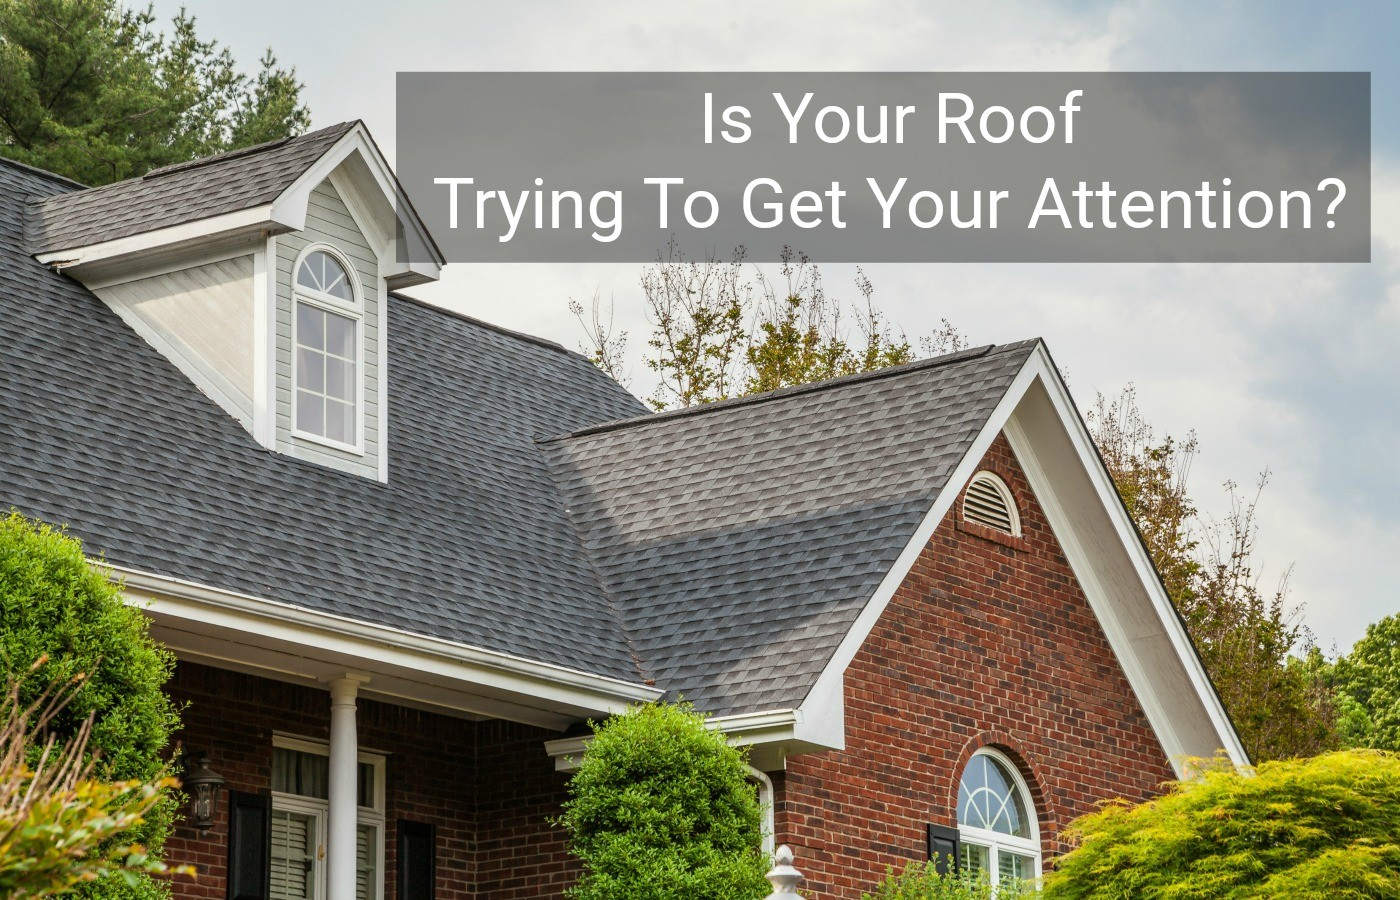 Is Your Roof Trying To Get Your Attention